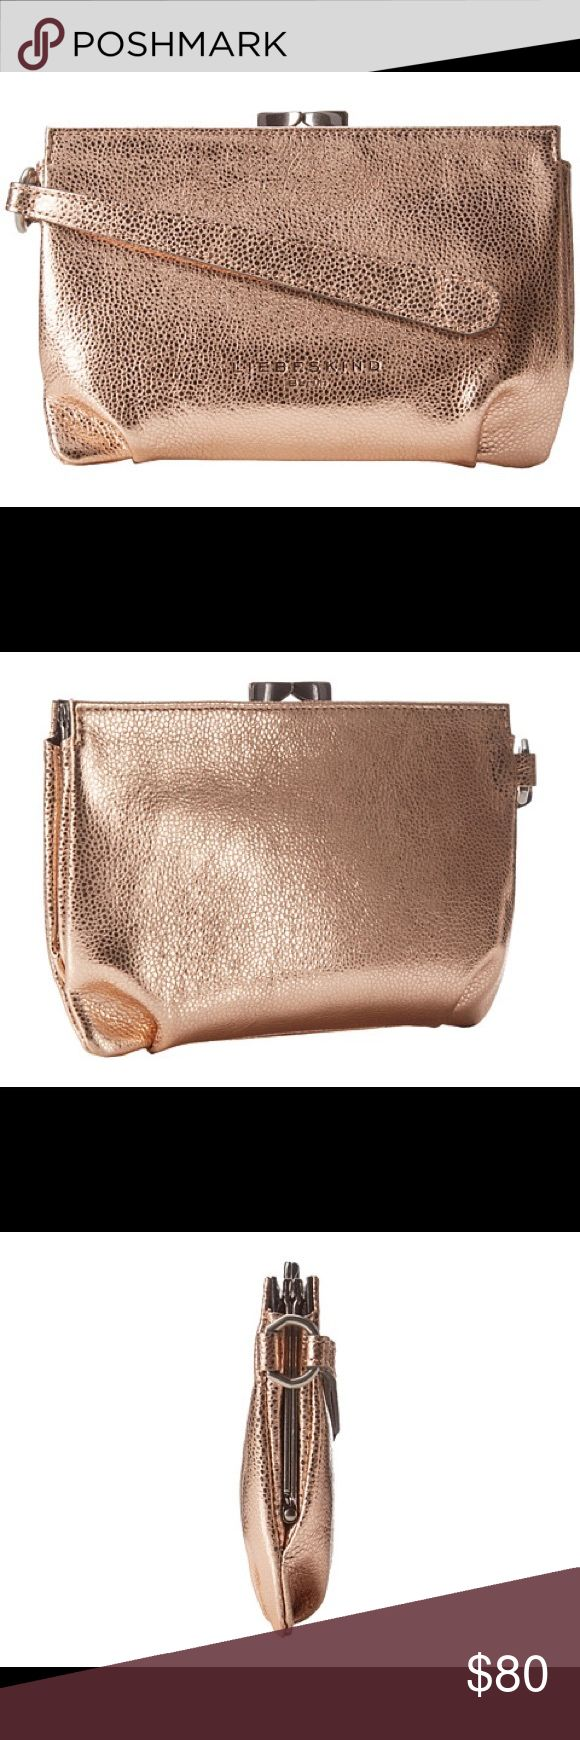 """Liebeskind® Patsy Clutch in copper, NWT! Add a shining touch to your evening attire with the Liebeskind® Patsy bag in metallic copper. Great for use as a pouch or make up organizer too!  Brand New with Tags.  Dust cover included.  100% Soft Calf Leather, Imported, Synthetic lining, Clasp closure, 5"""" high x 7"""" wide x 1.5""""  deep, Pouch with main compartment and wristlet strap, Signature logo detail in front. Liebeskind Bags Clutches & Wristlets"""